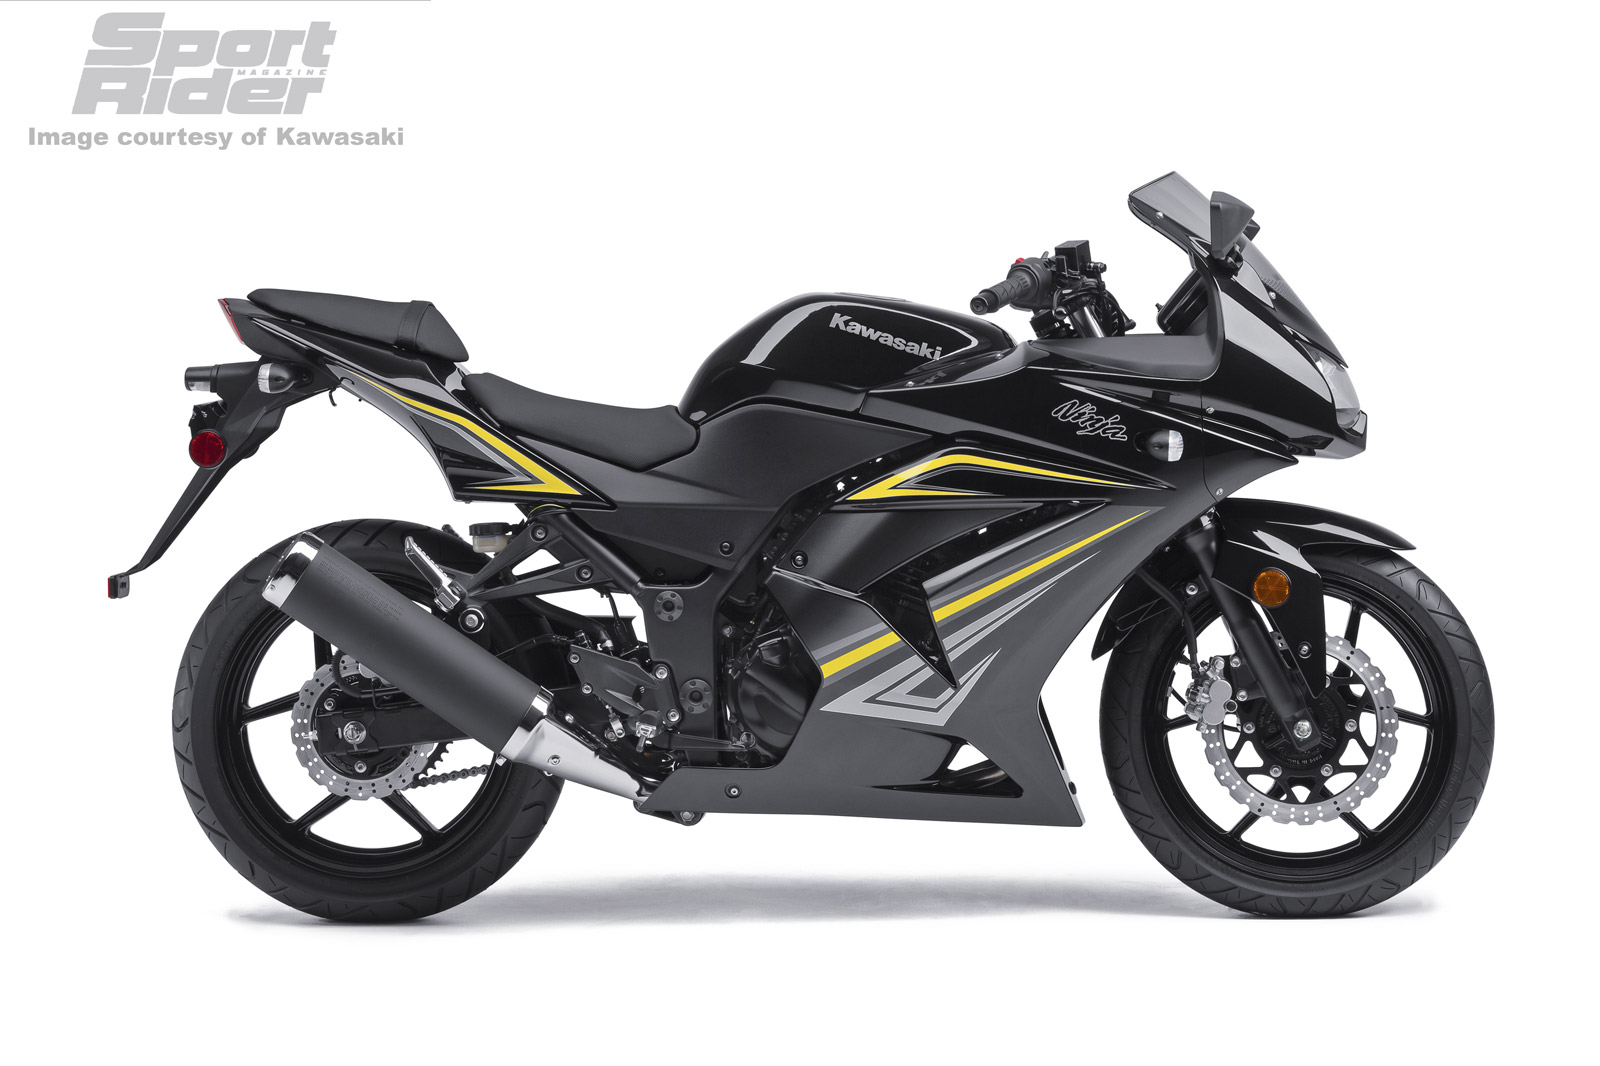 kawasaki motor bikes 2012 kawasaki ninja 250r. Black Bedroom Furniture Sets. Home Design Ideas